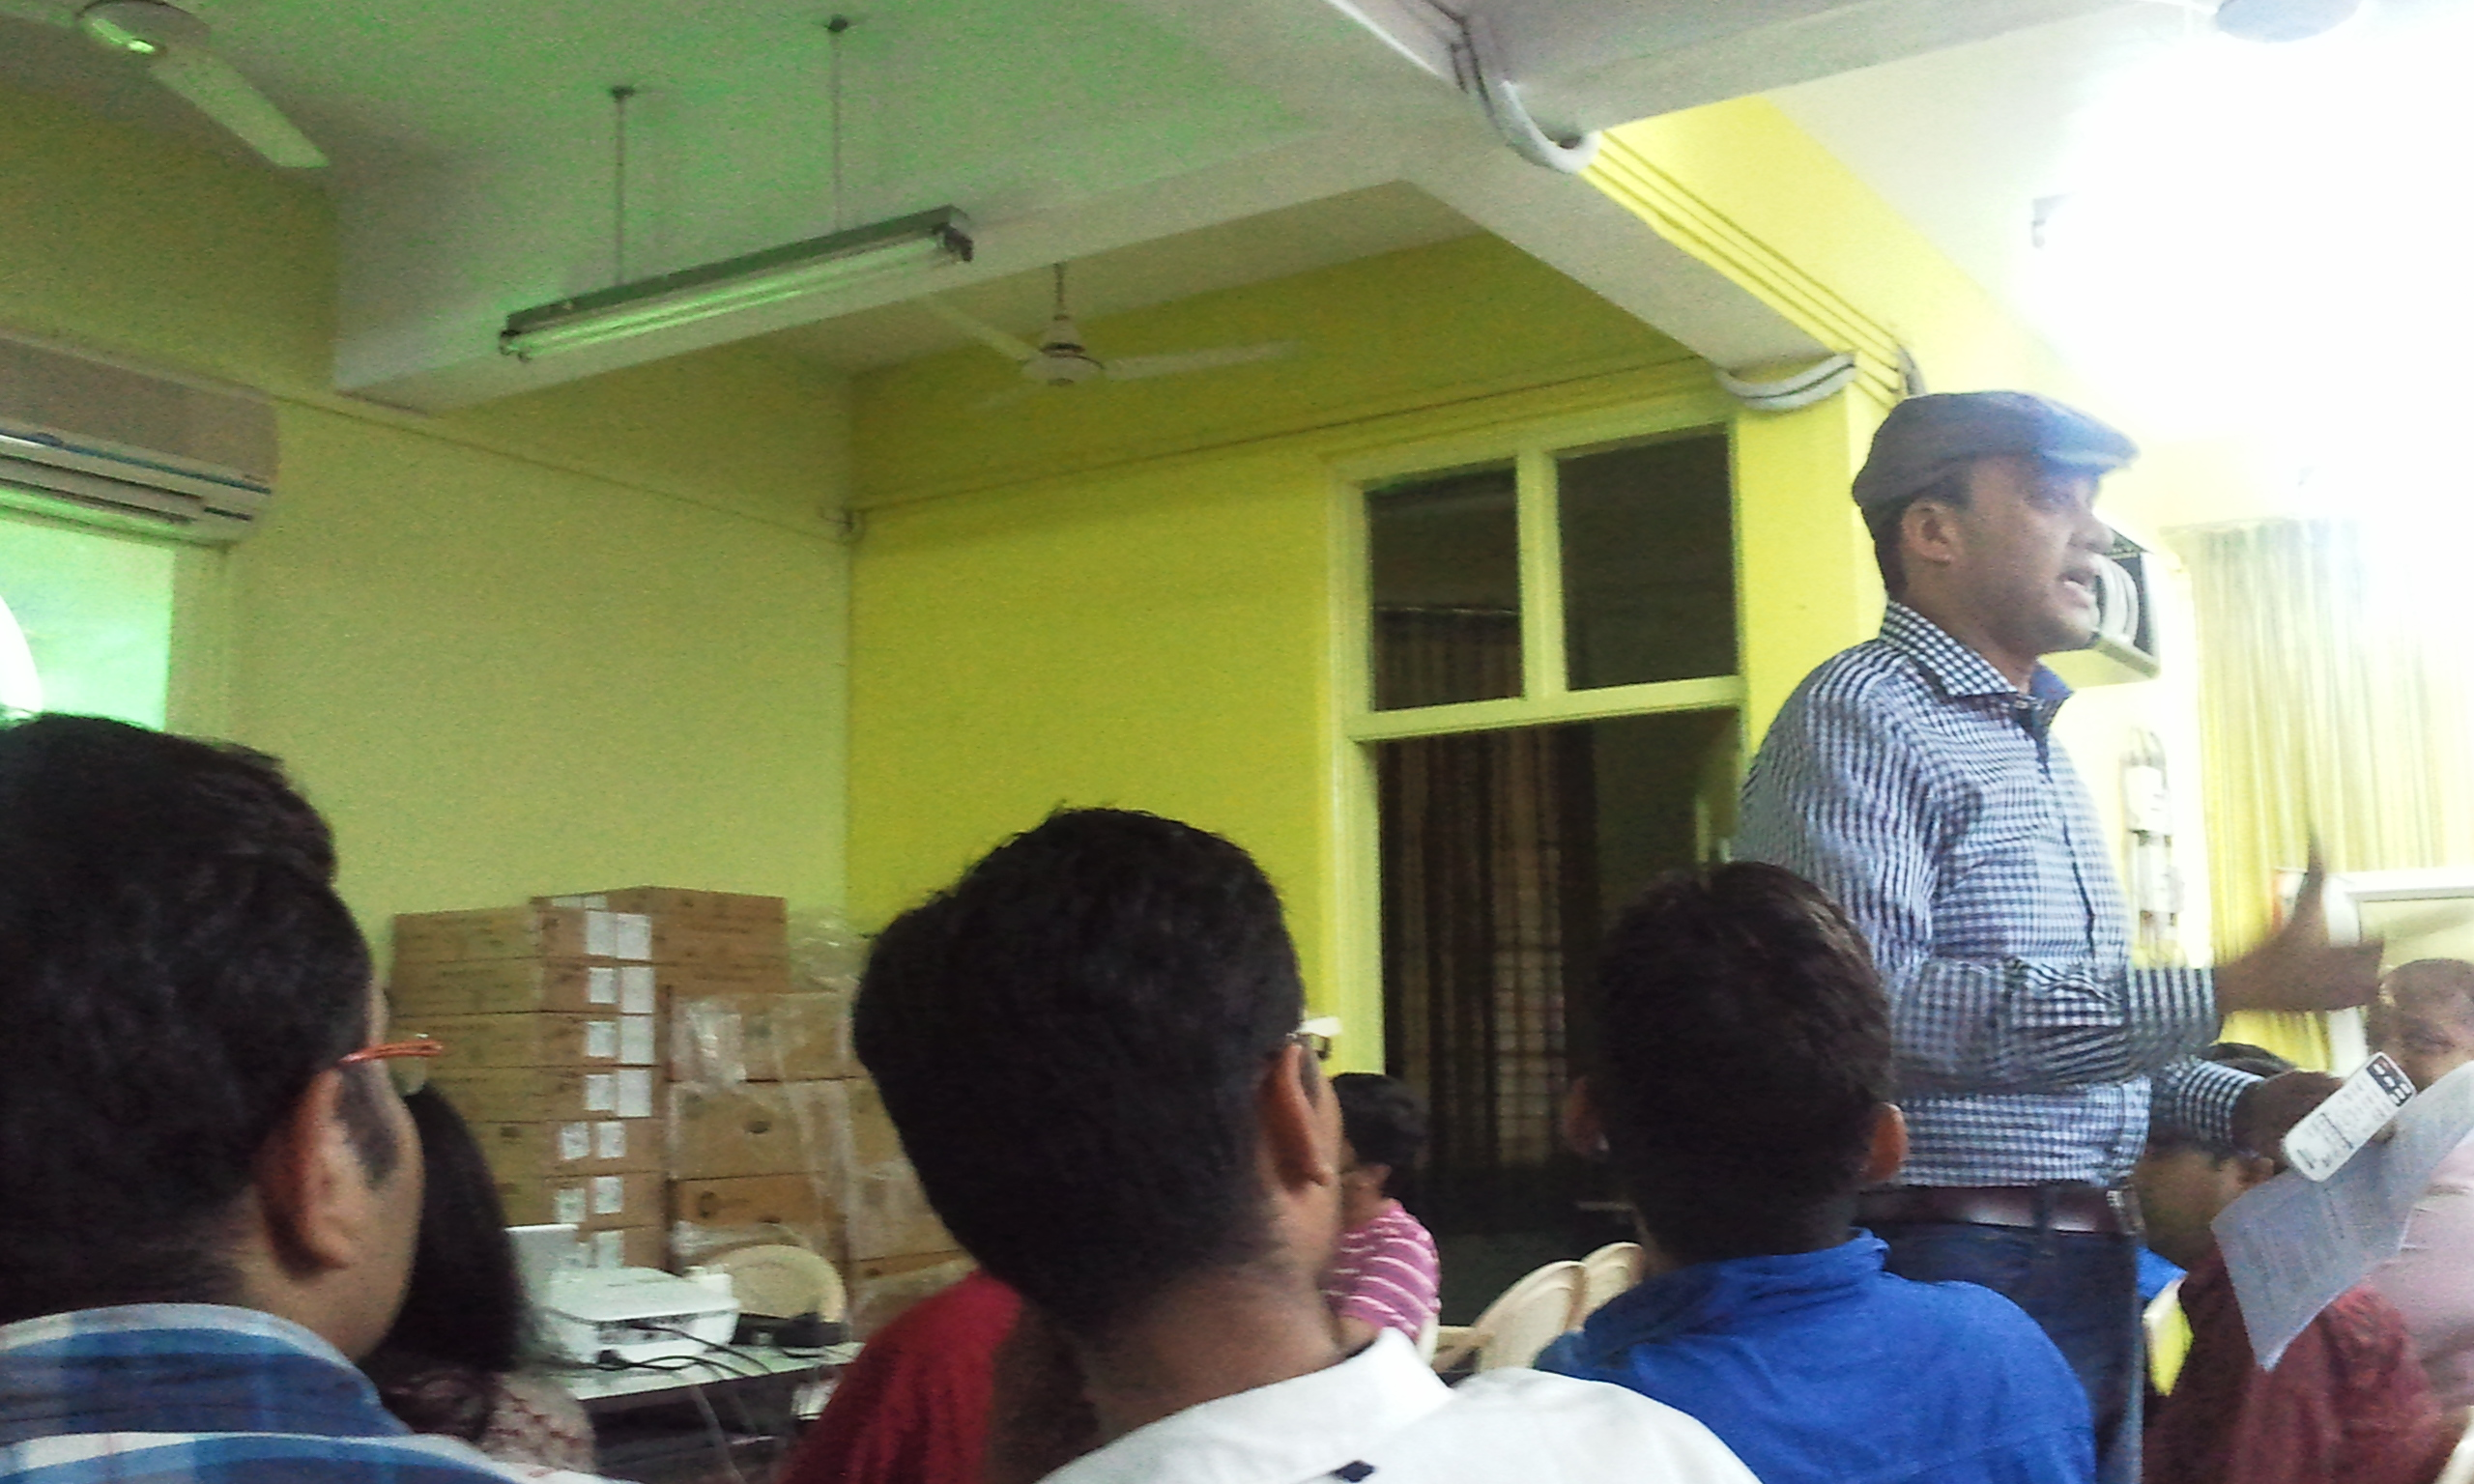 Rakesh Patel at eChai